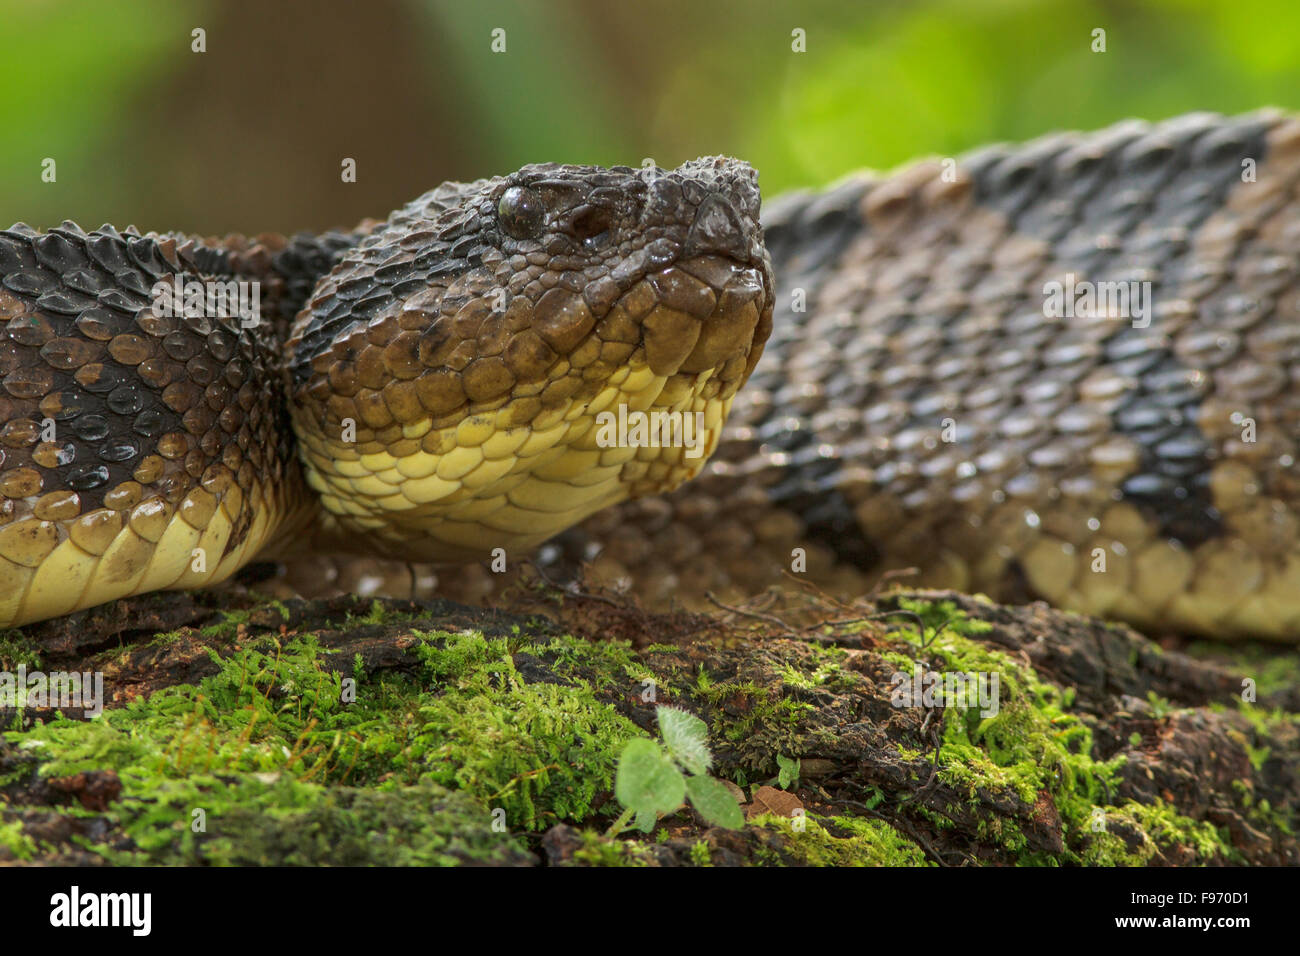 Jumping Pit Viper ready for striking, Costa Rica - Stock Image